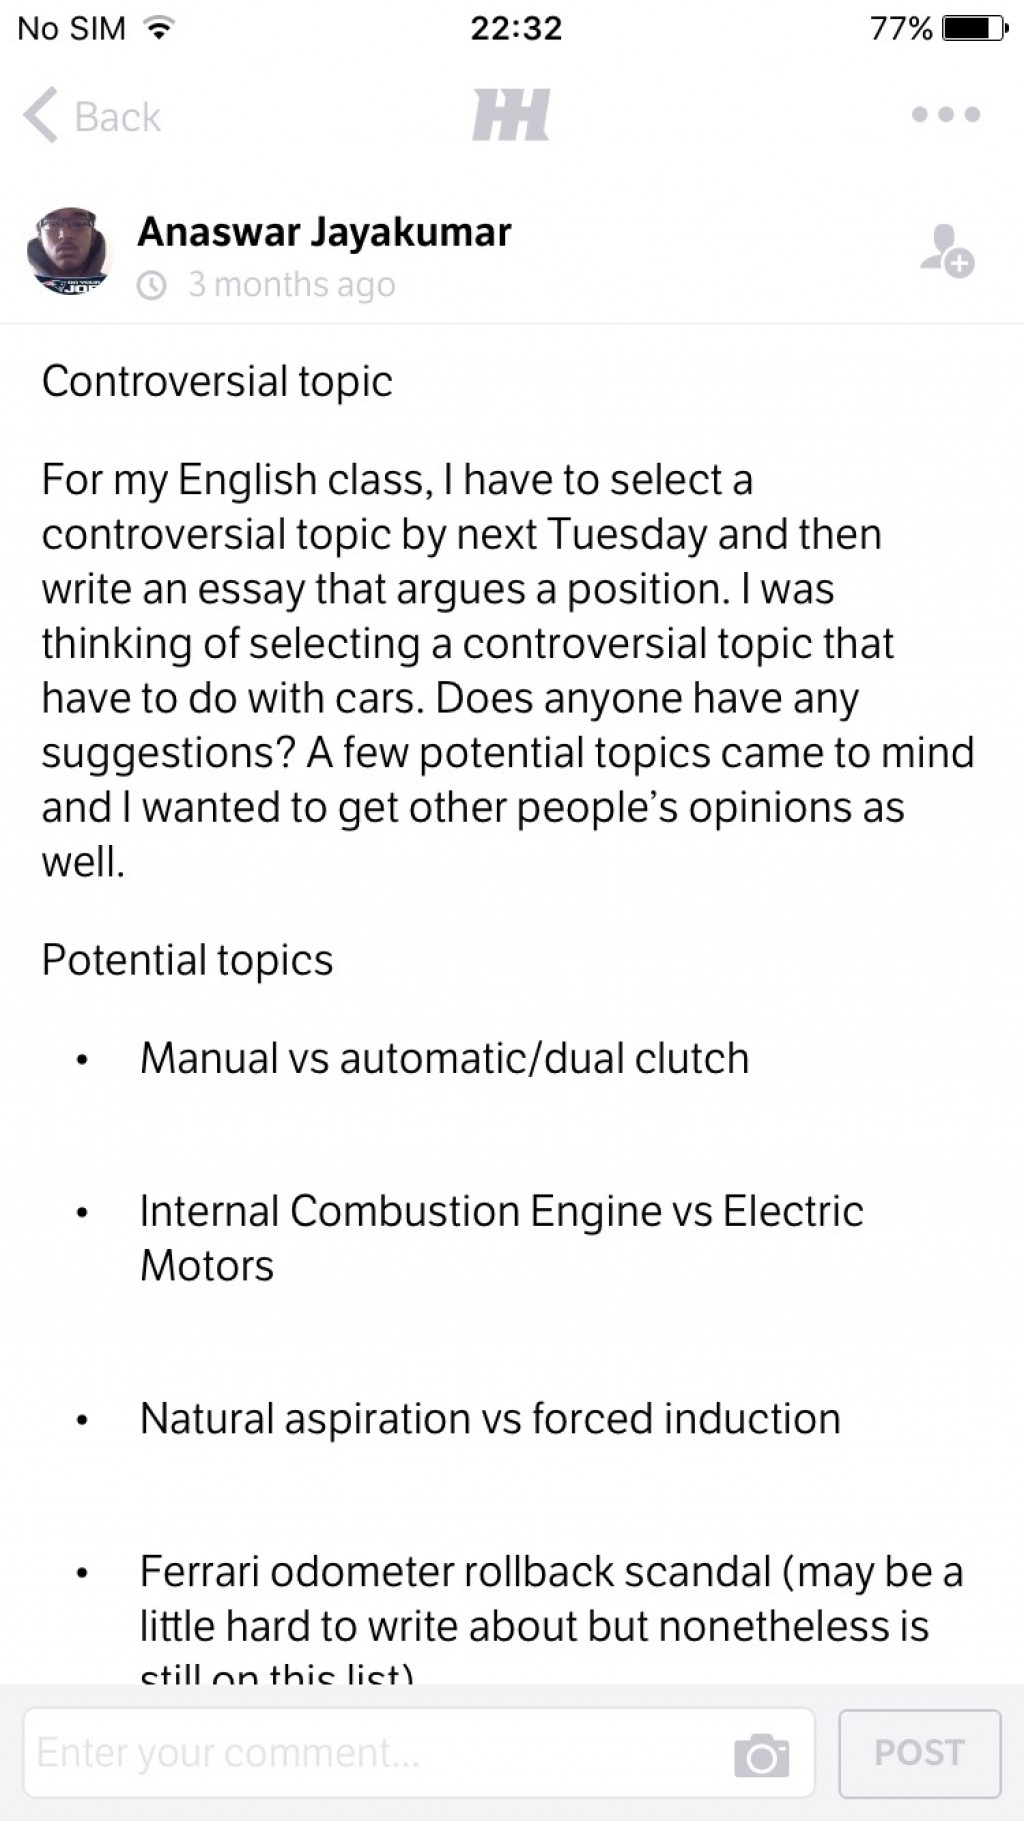 017 Controversial Topic Essay Topics Example Research Paper Outline Phenomenal Writing A Middle School Mla Style On Obesity Large